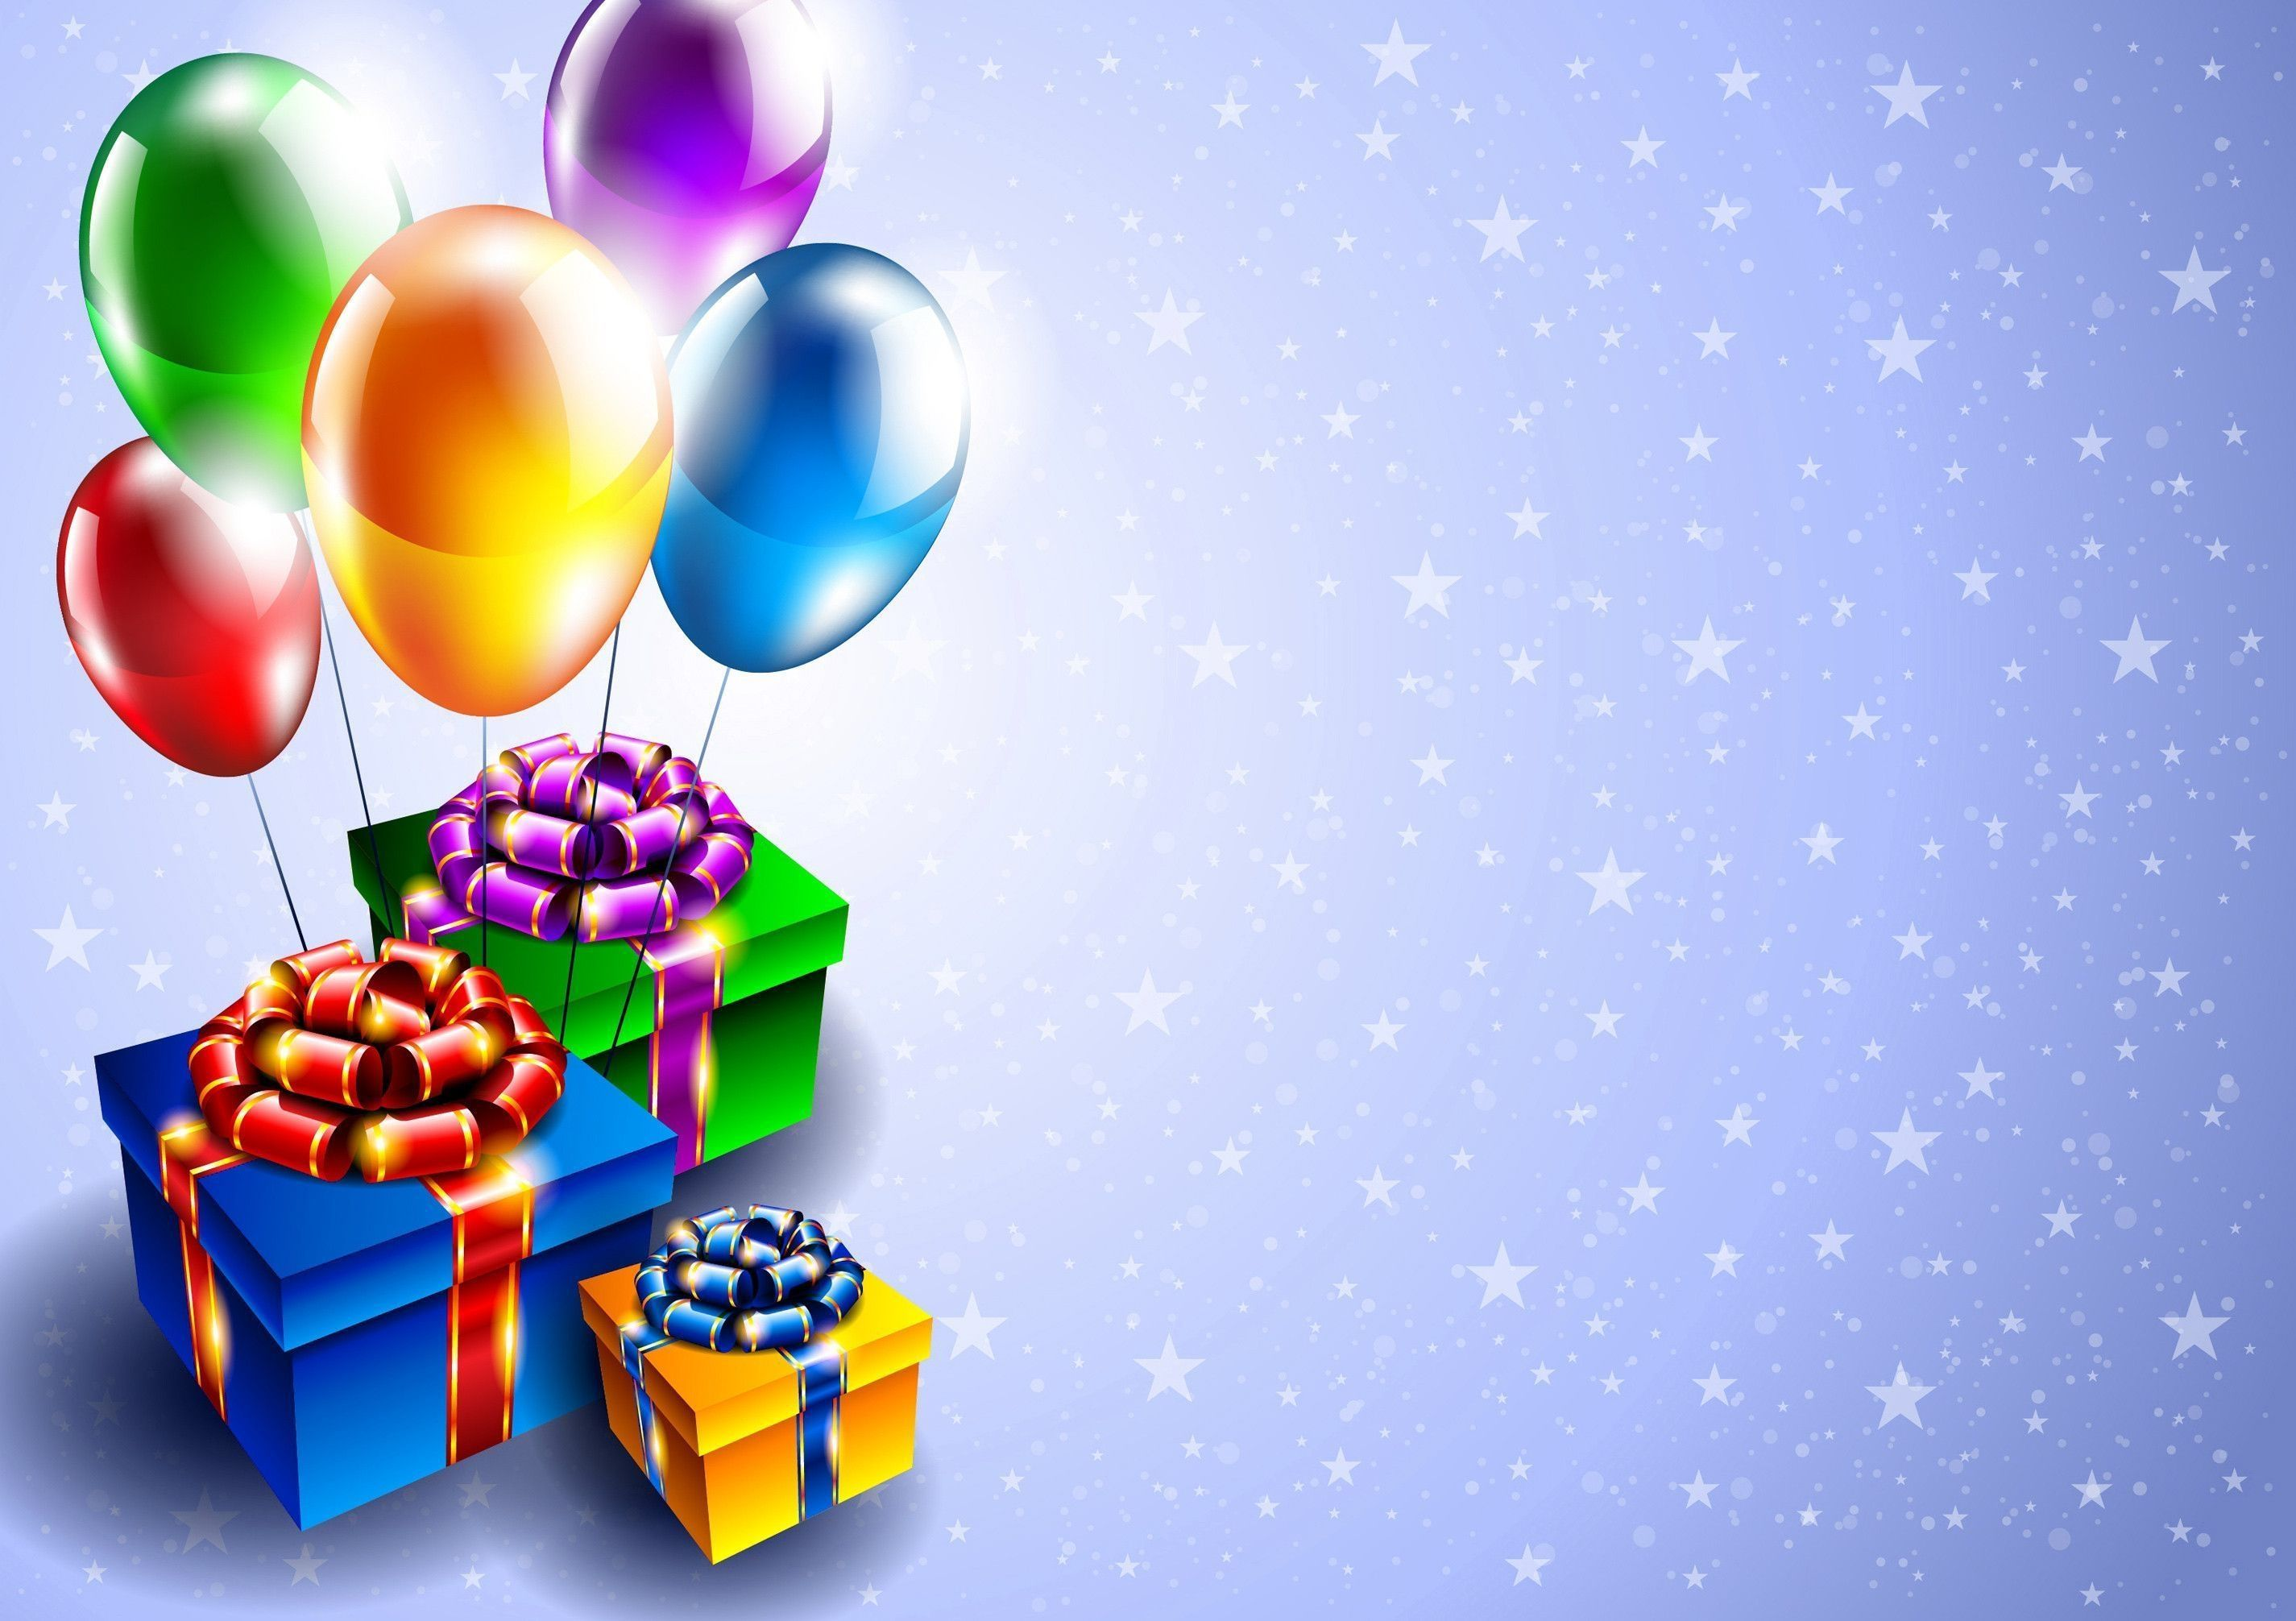 Hd Background Images Of Birthday Birthday Background Birthday